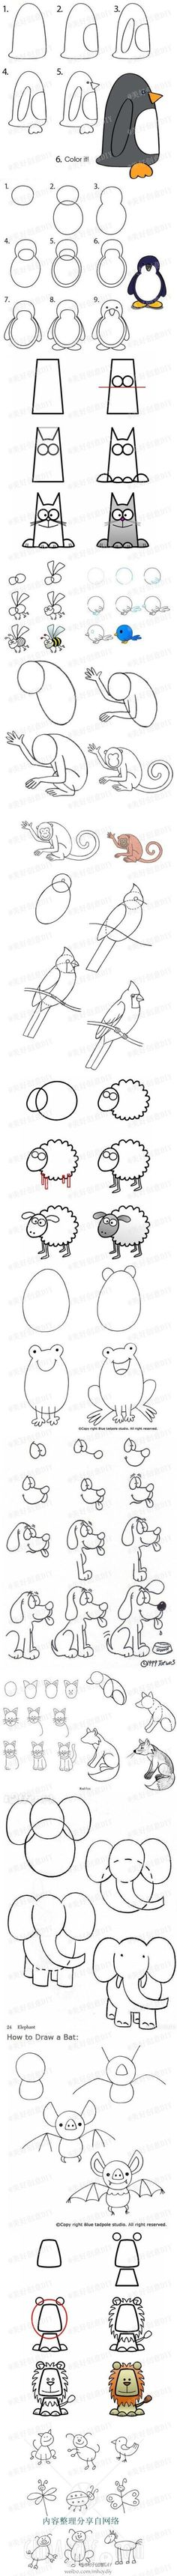 Drawing animals @ MyHomeLookBookMyHomeLookBook